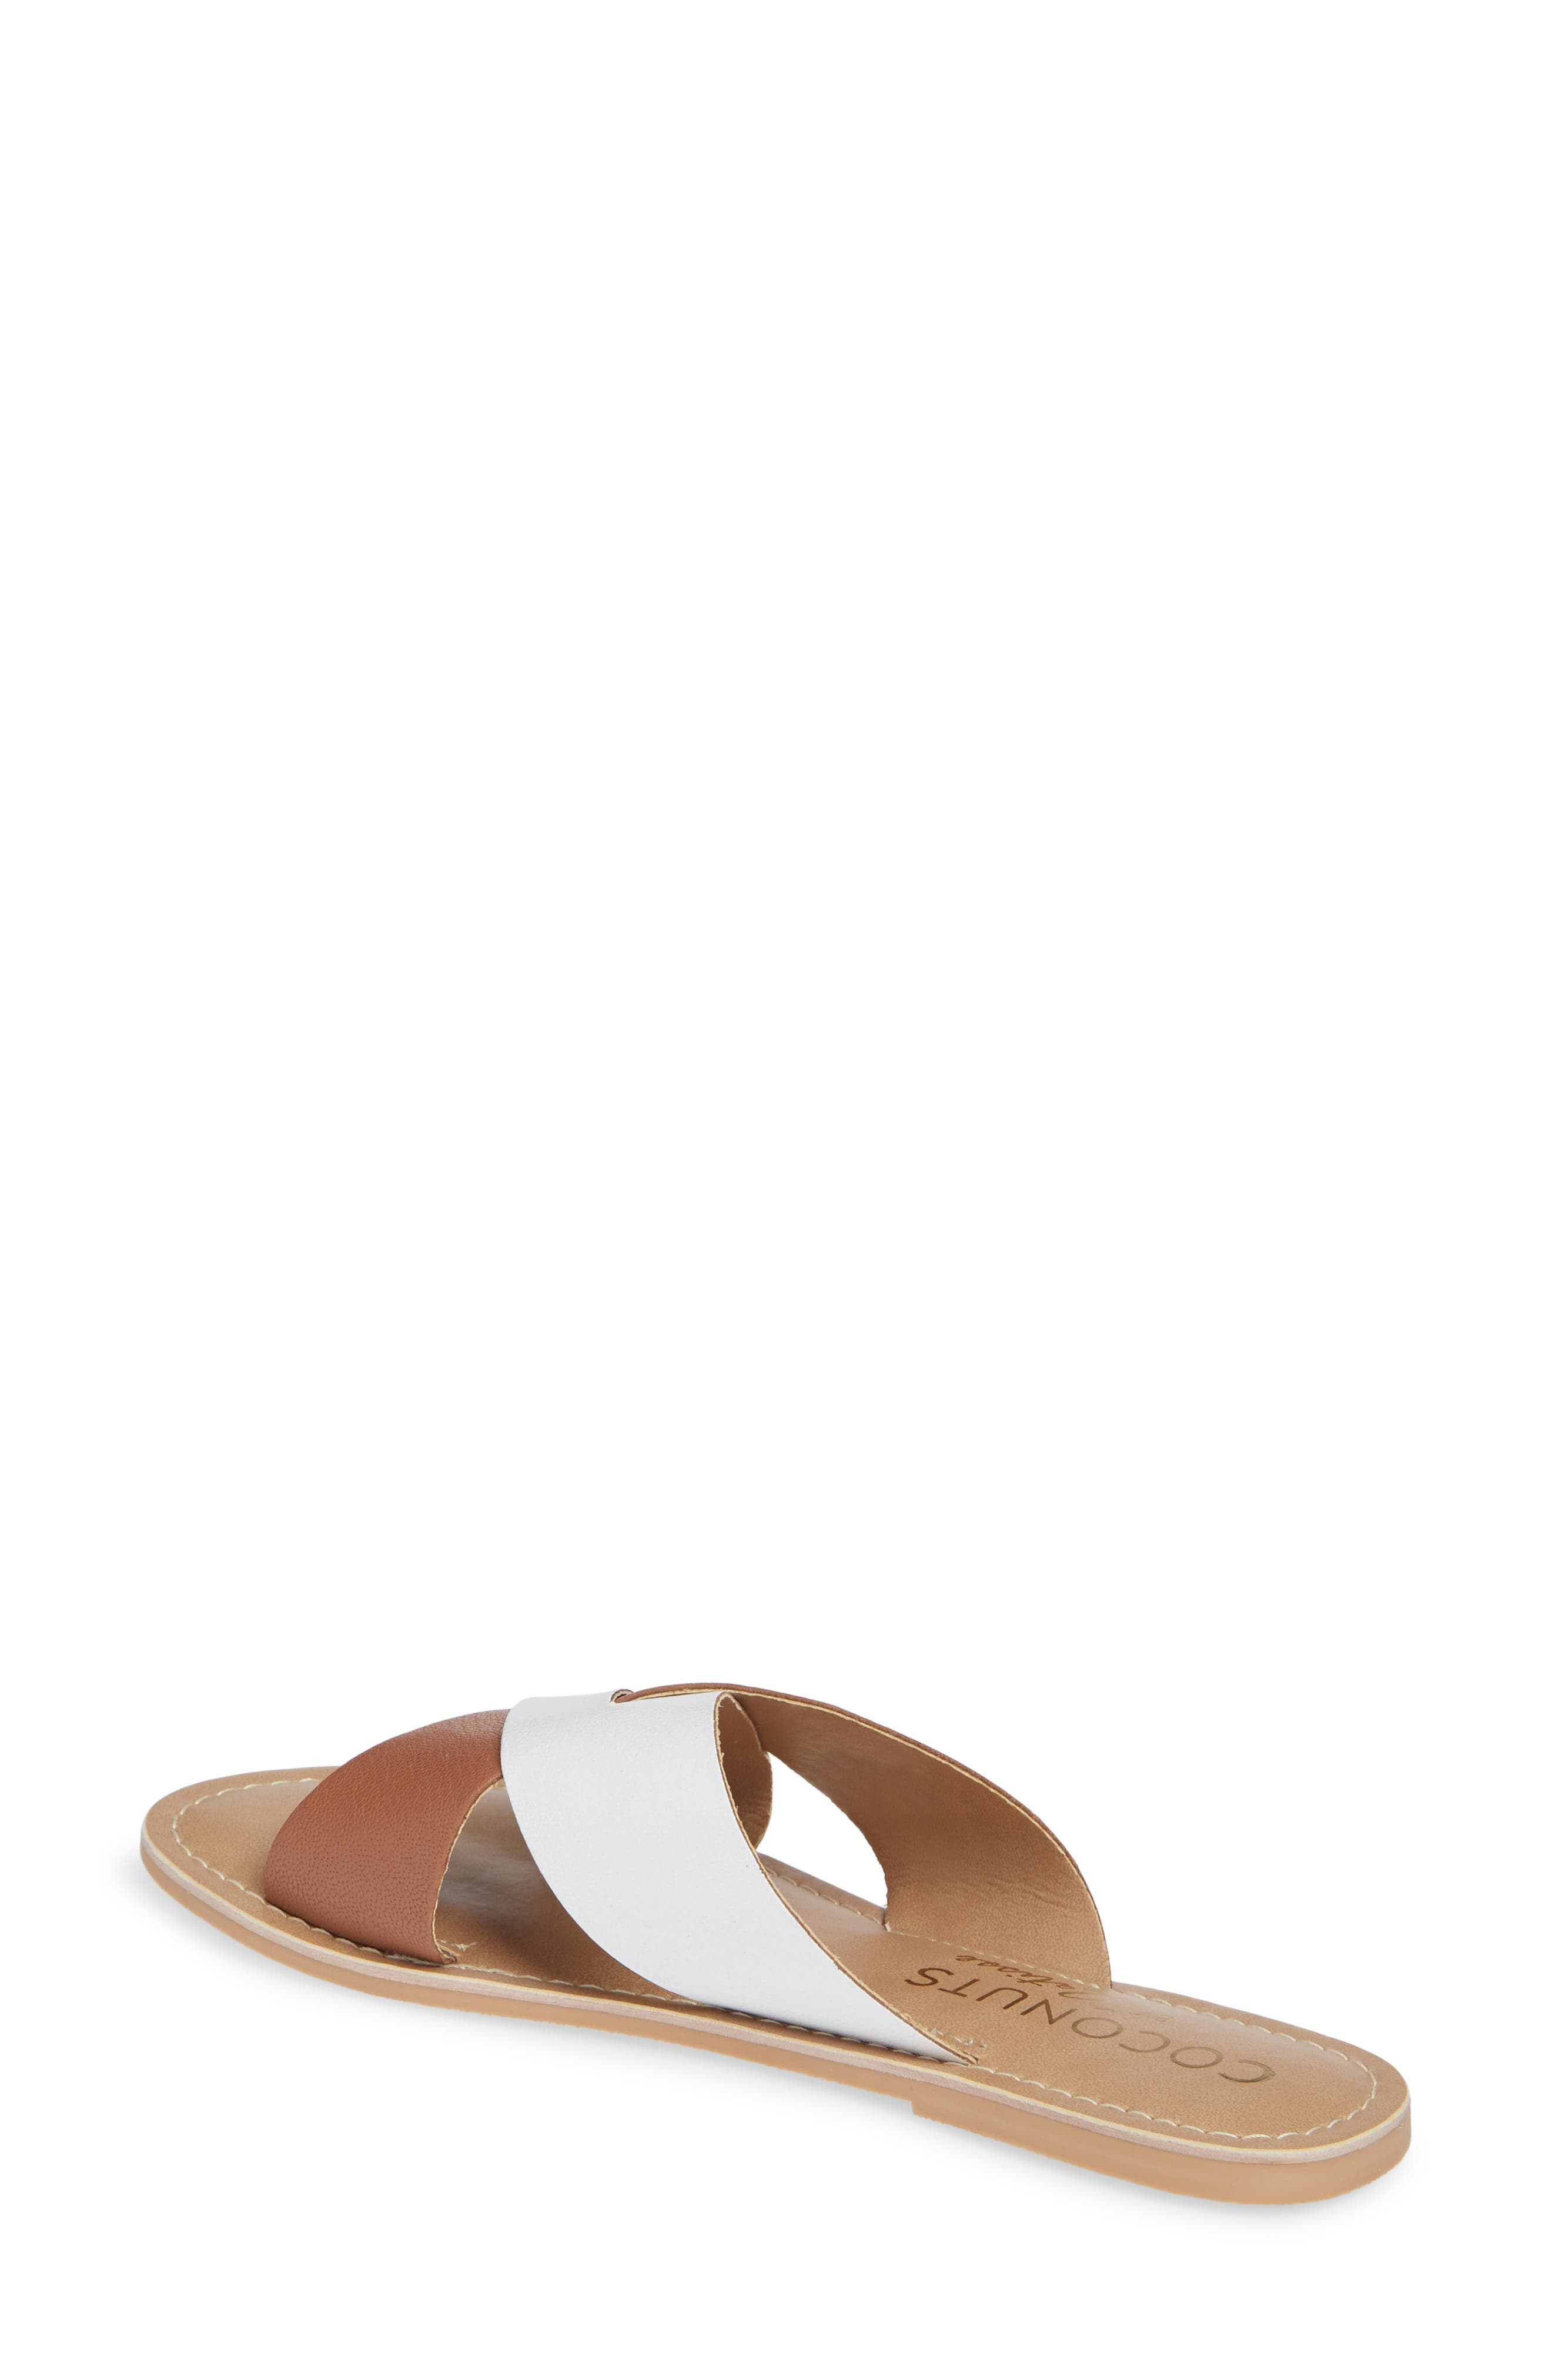 COCONUTS BY MATISSE, Wilma Slide Sandal, Alternate thumbnail 2, color, TAN/ WHITE LEATHER